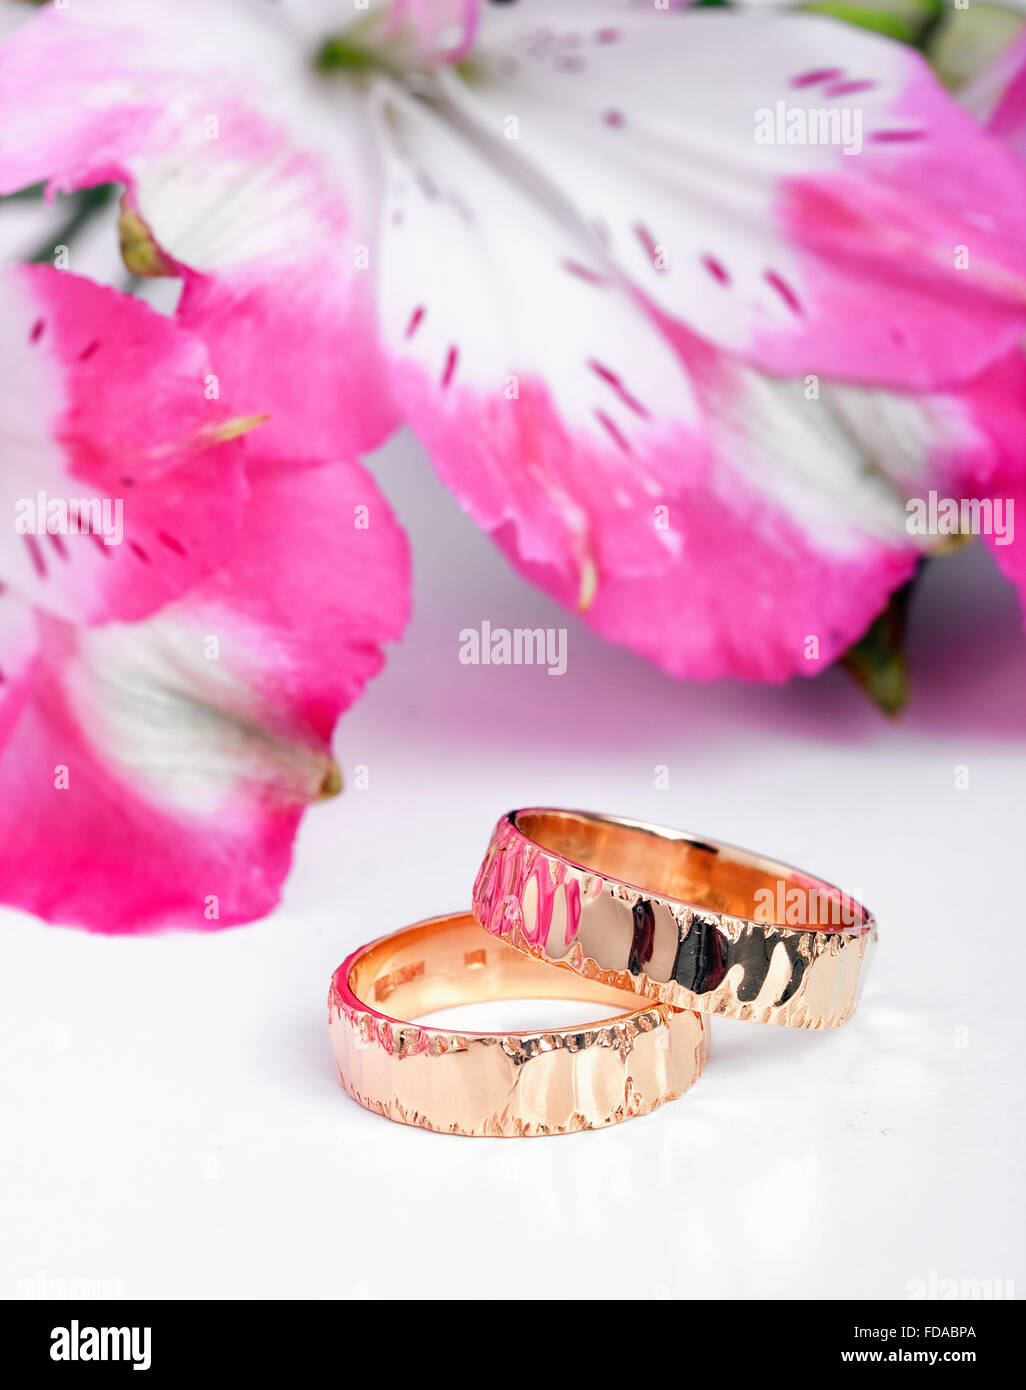 Wedding Rings Isolated Stock Photos & Wedding Rings Isolated Stock ...